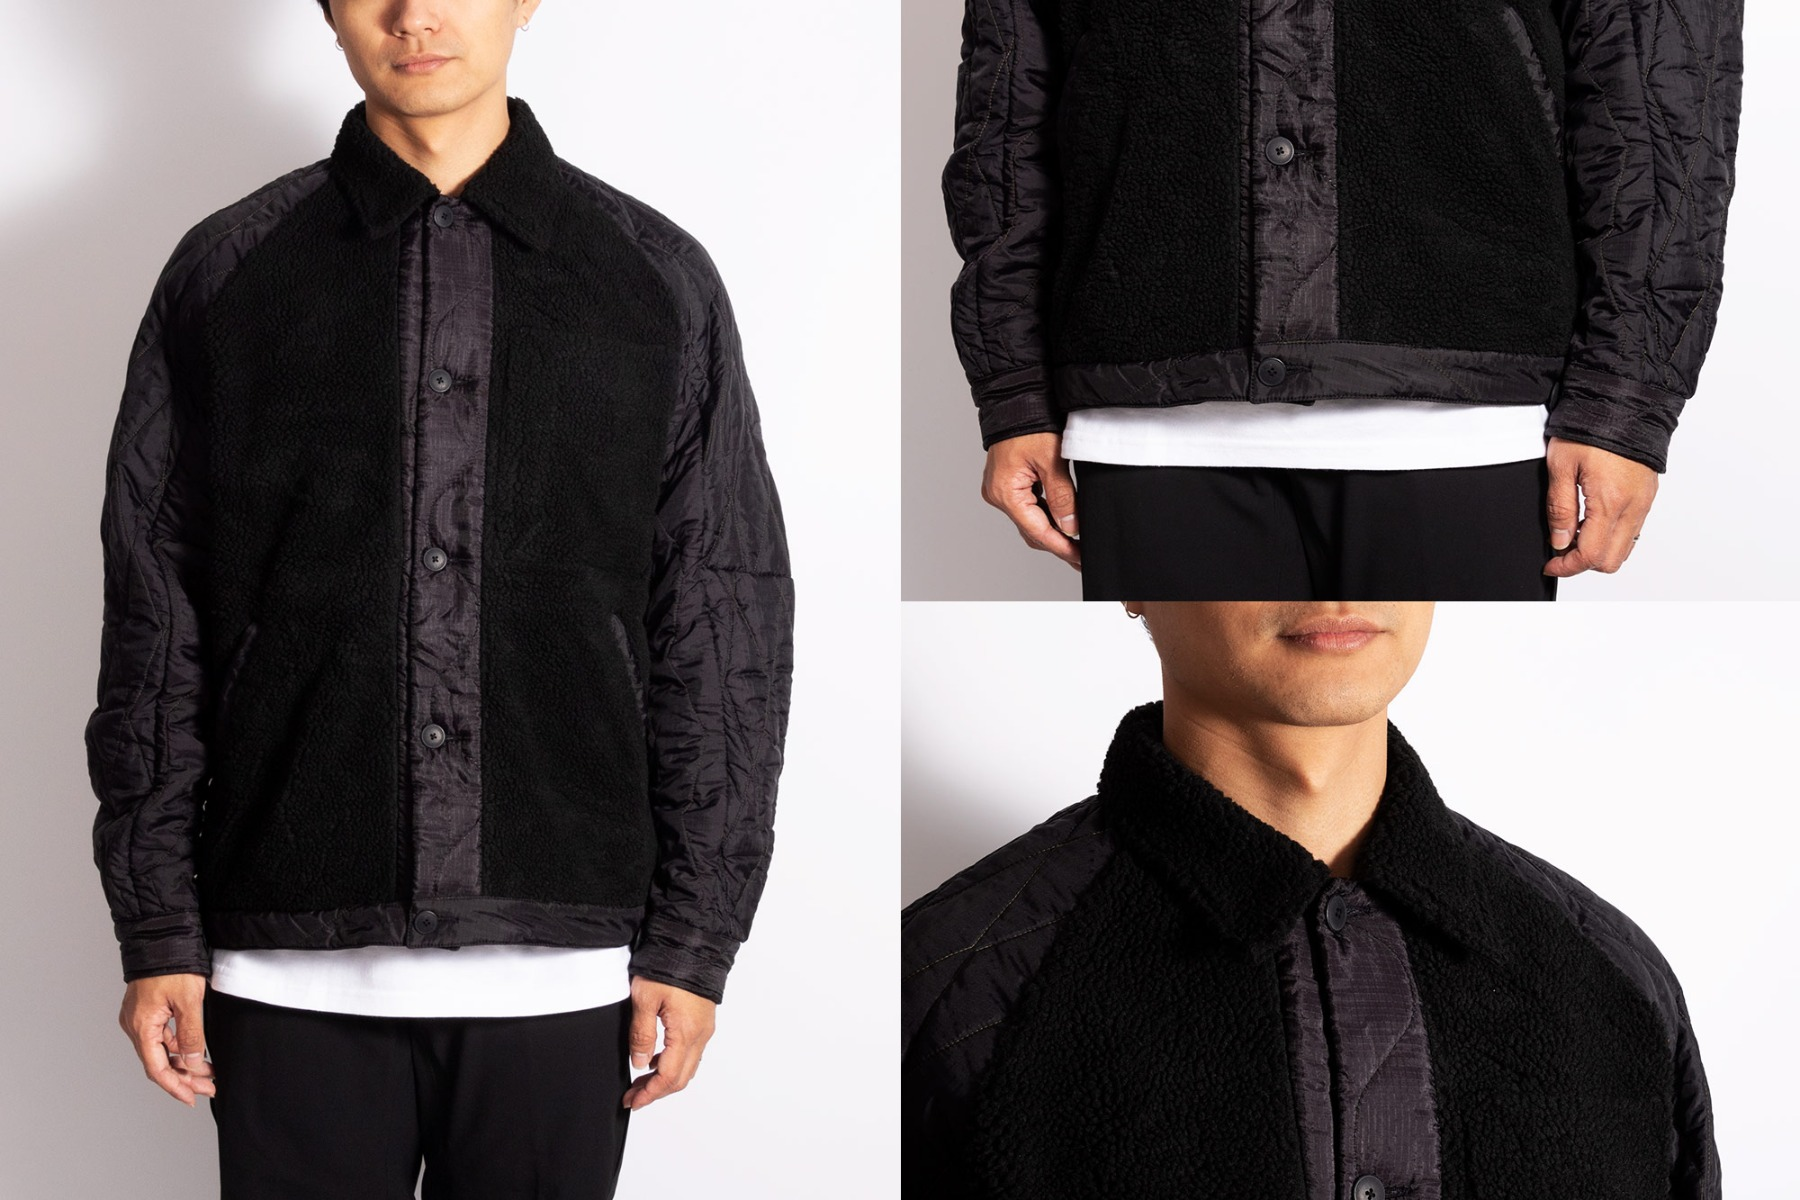 maharishi upcycled / recycled grizzly jacket in black